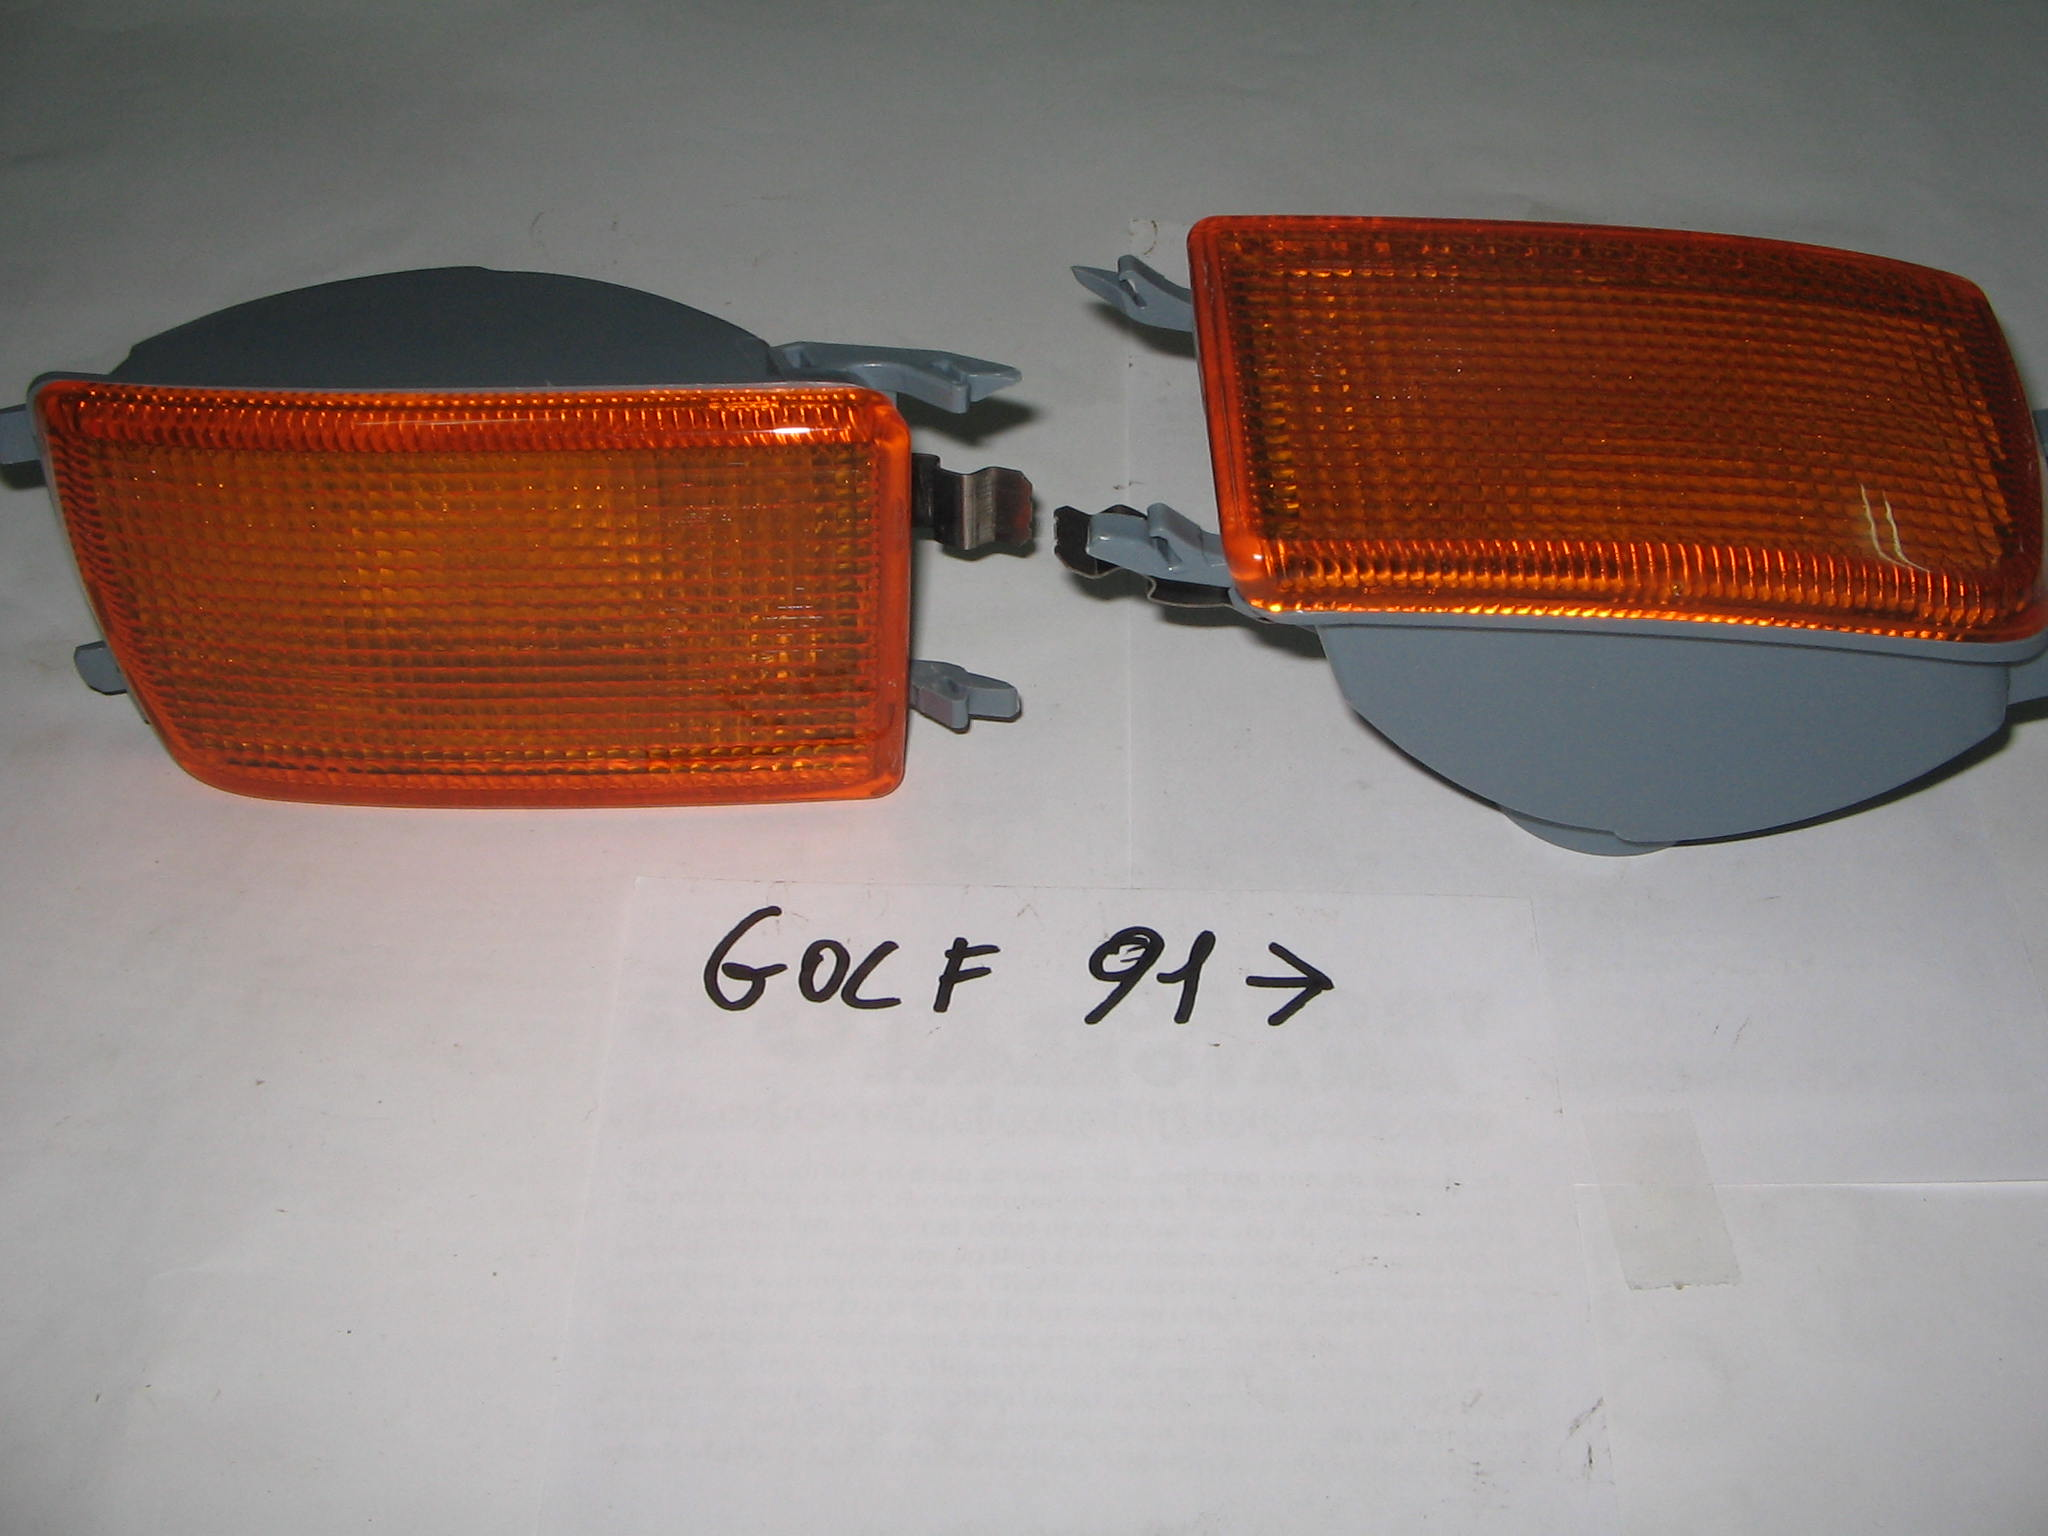 FANALINI GOLF  91                  ART. 1.036